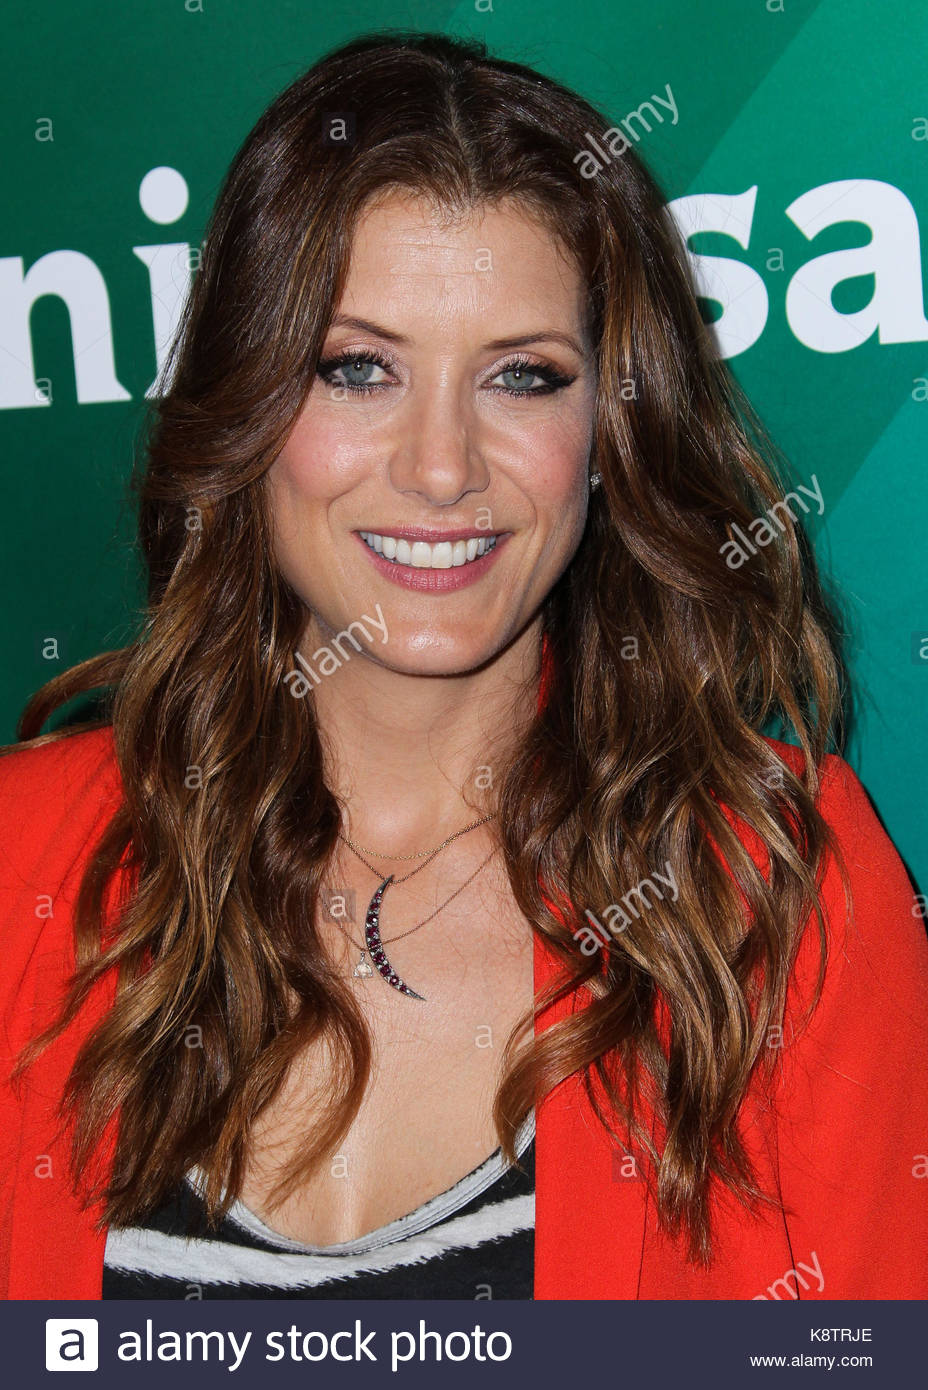 Communication on this topic: Maureen Larrazabal (b. 1979), kate-walsh-actress/